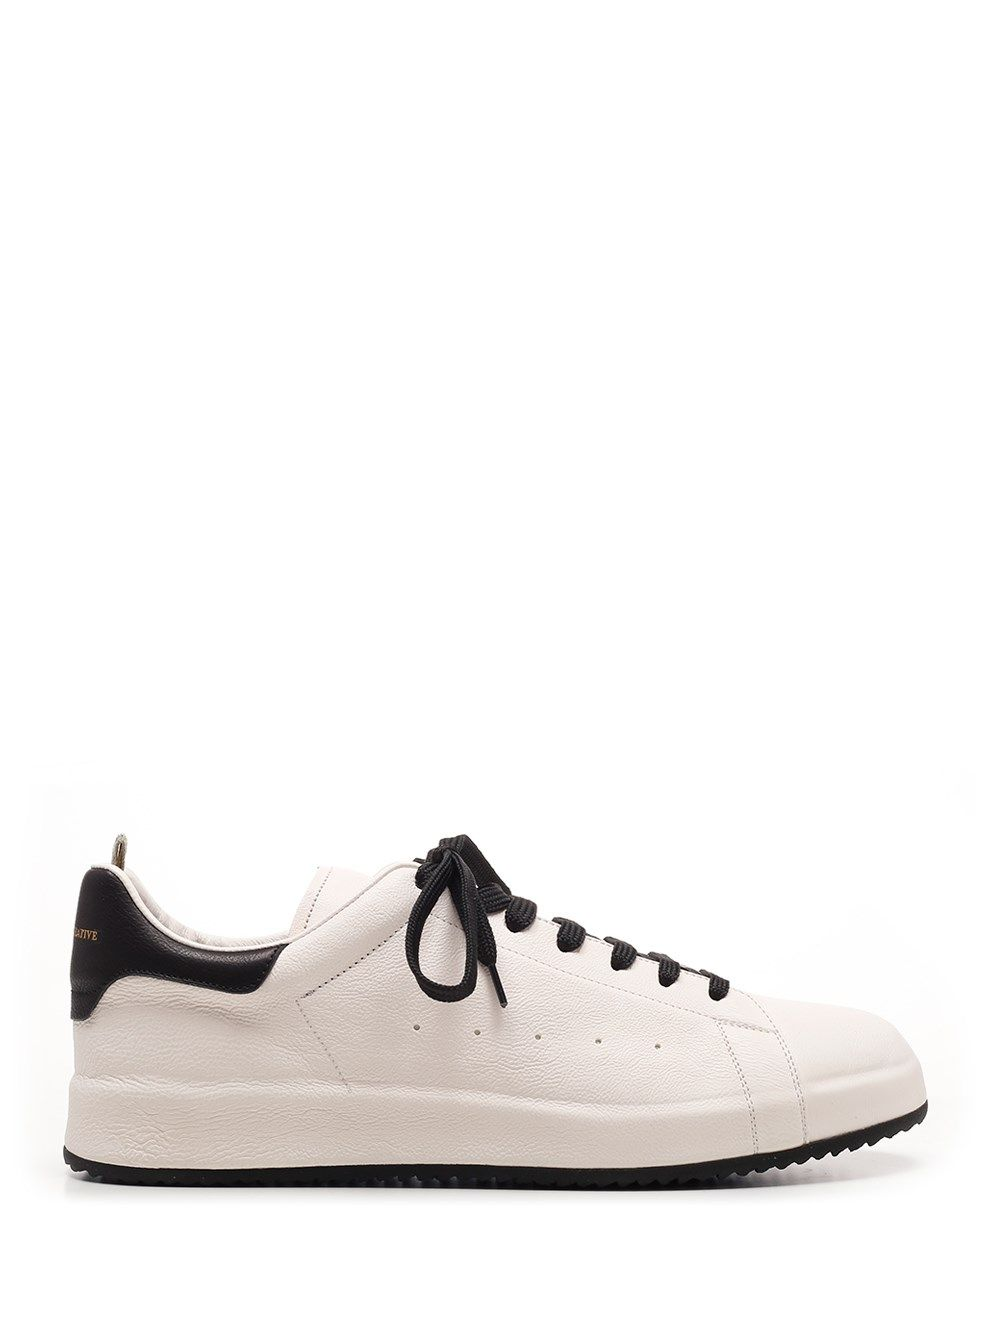 Officine Creative Leathers OFFICINE CREATIVE MEN'S WHITE OTHER MATERIALS SNEAKERS